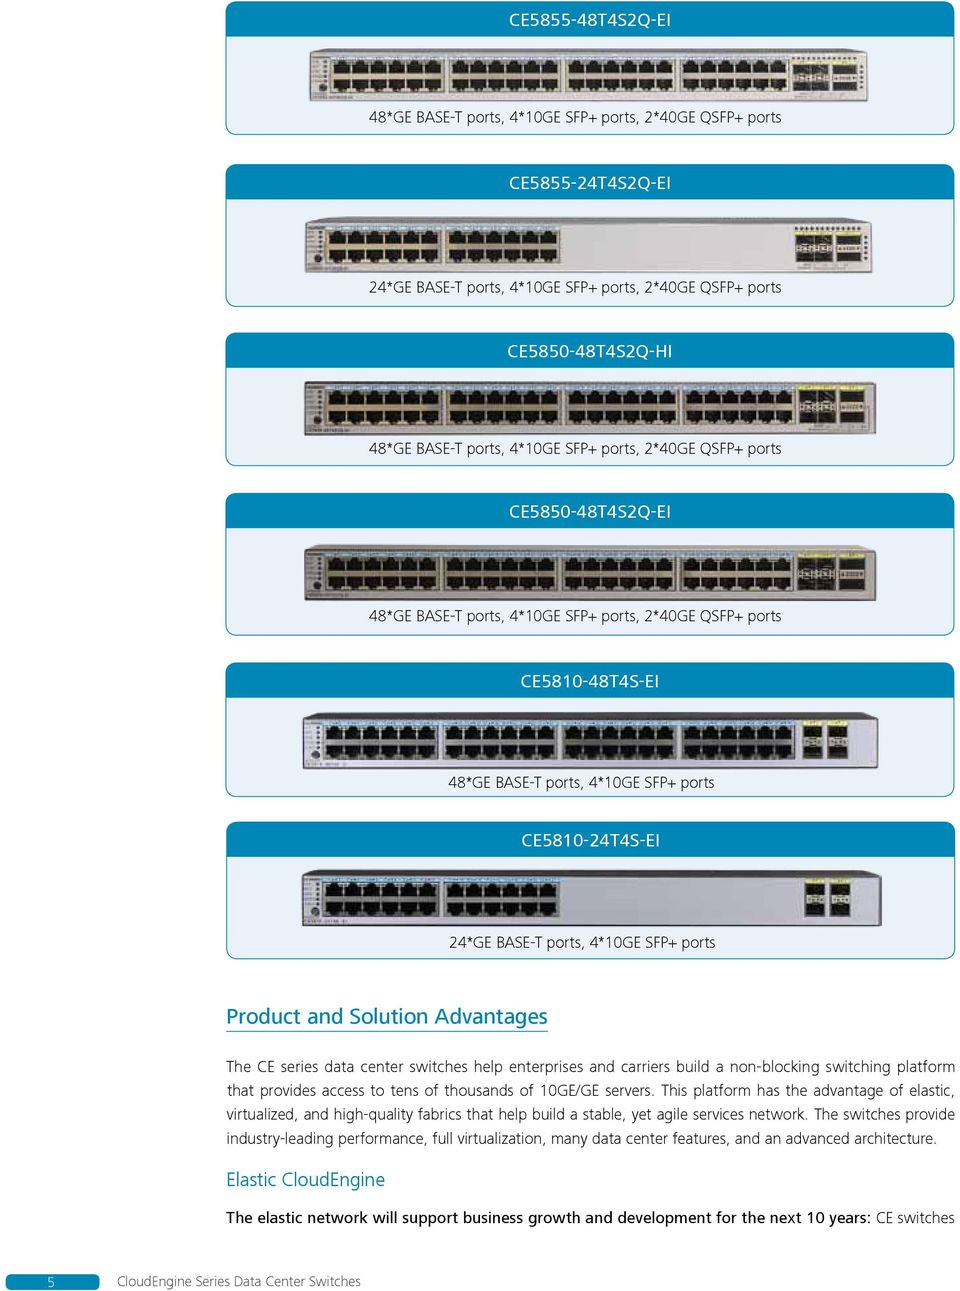 4*10GE SFP+ ports Product and Solution Advantages The CE series data center switches help enterprises and carriers build a non-blocking switching platform that provides access to tens of thousands of